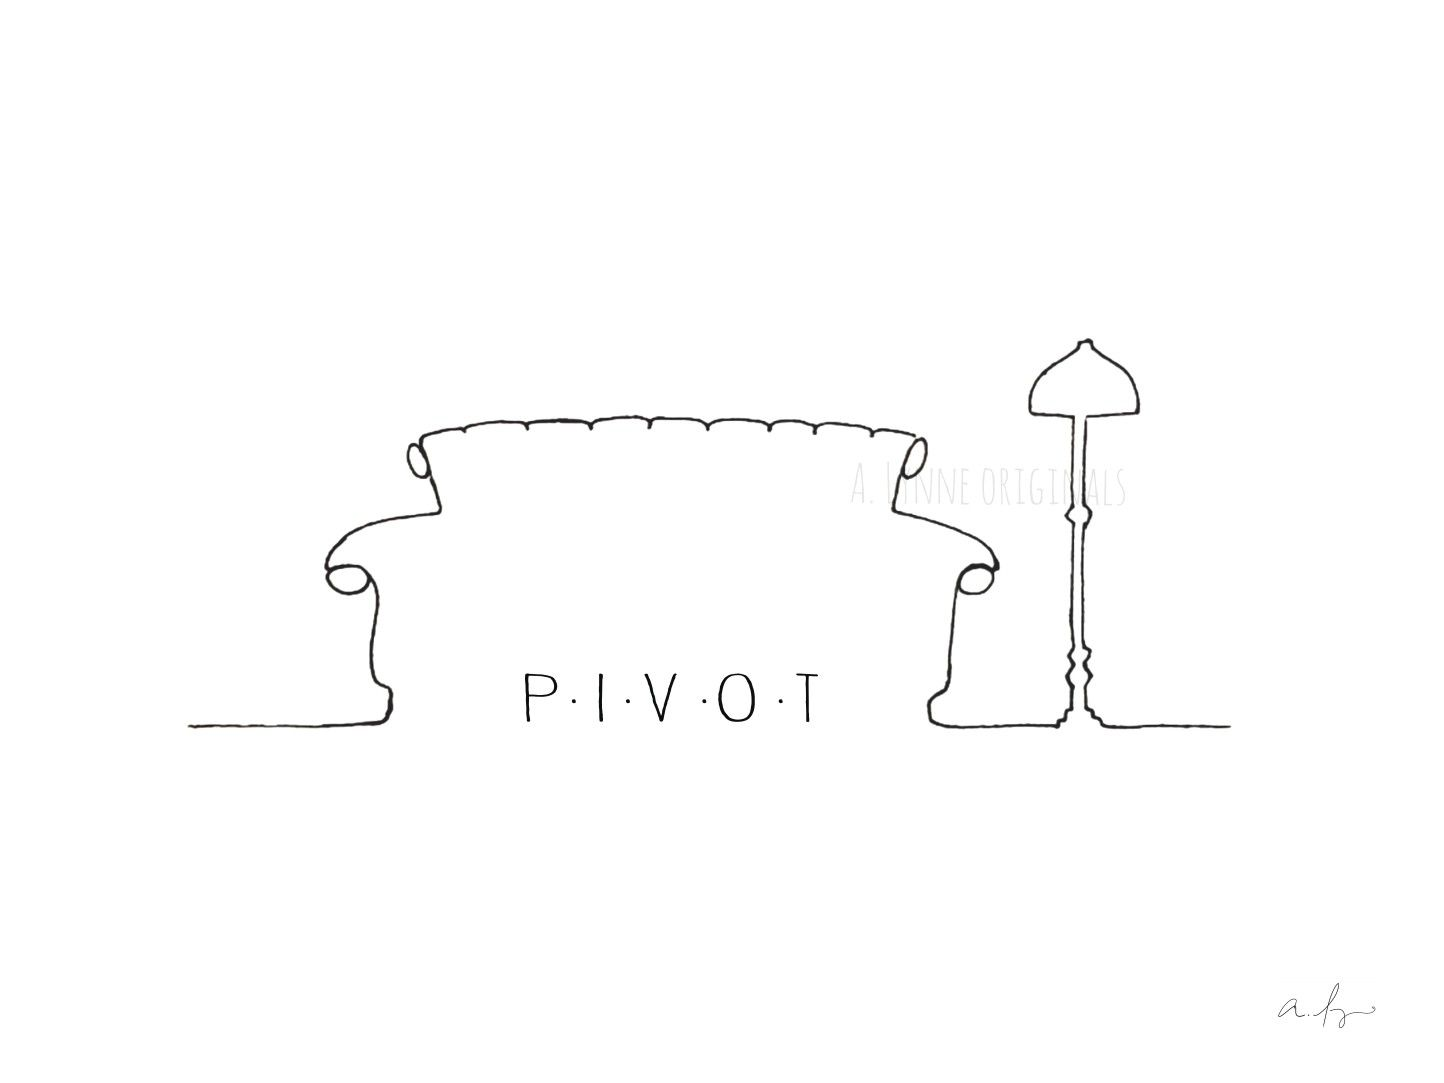 Friends Pivot Couch And Lamp Minimal Outline Drawing Drawings Of Friends Pivot Friends Outline Drawings